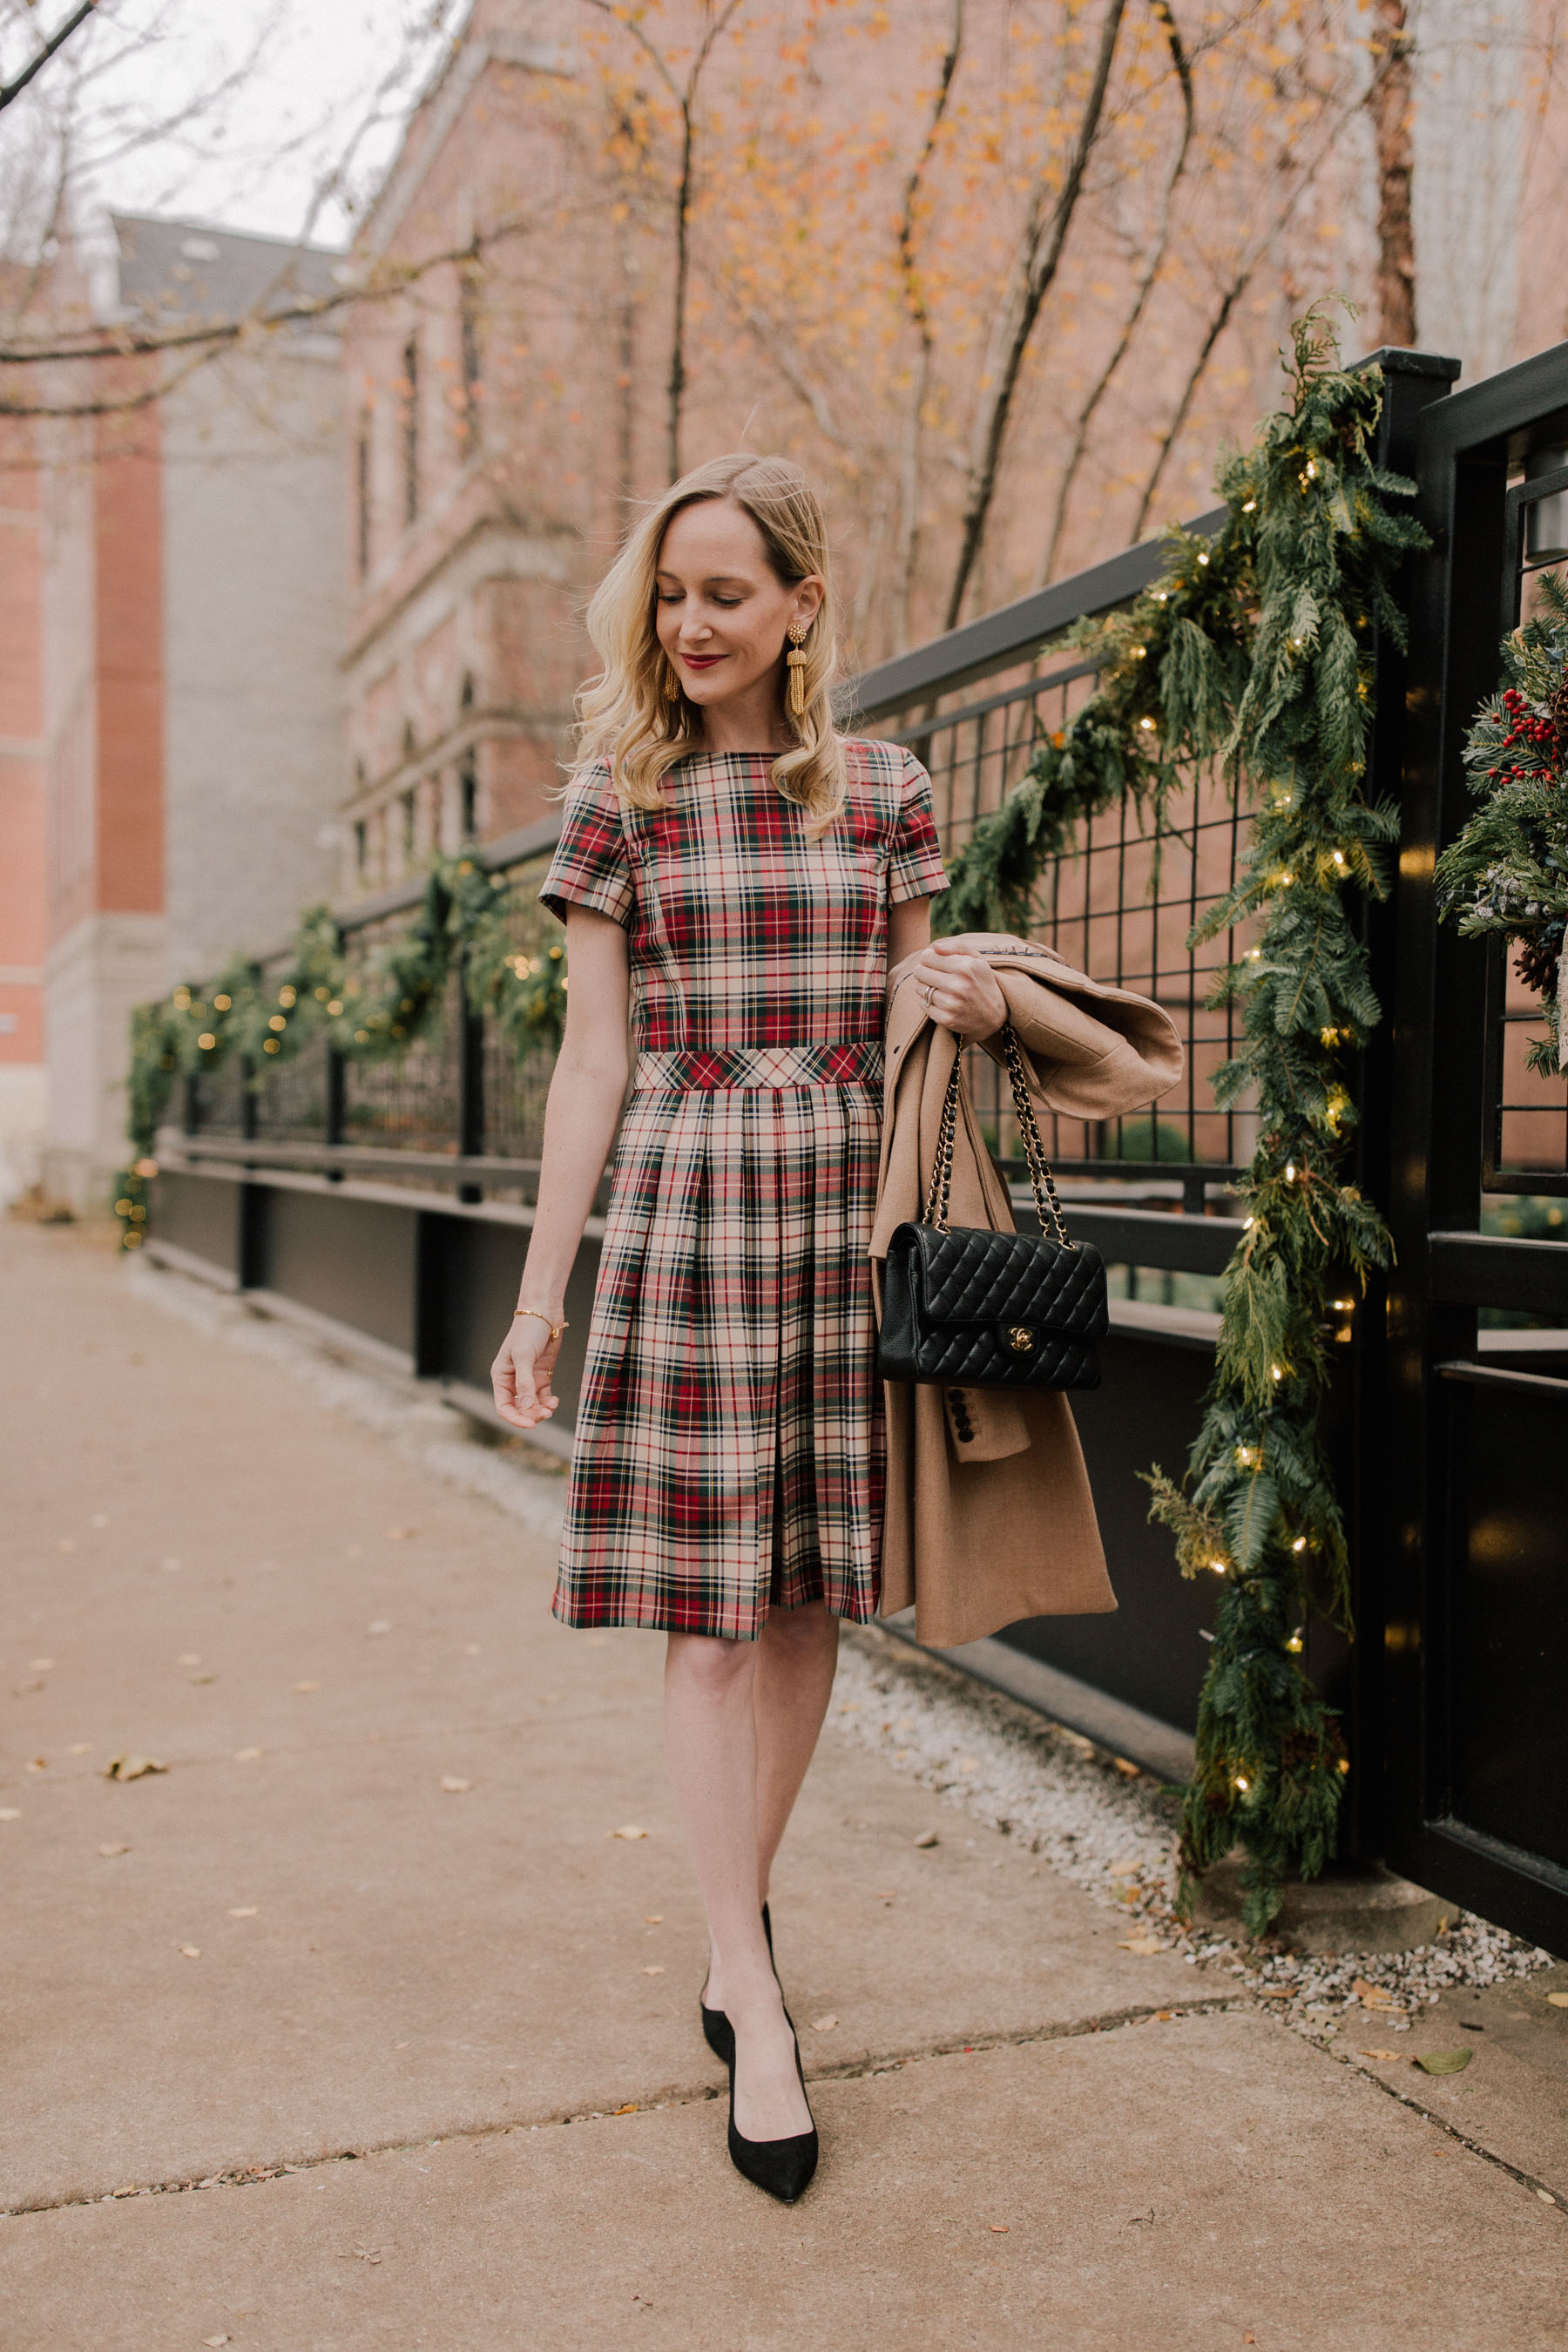 Bow Tie New City >> The Best Stewart Plaid Clothing - Kelly in the City